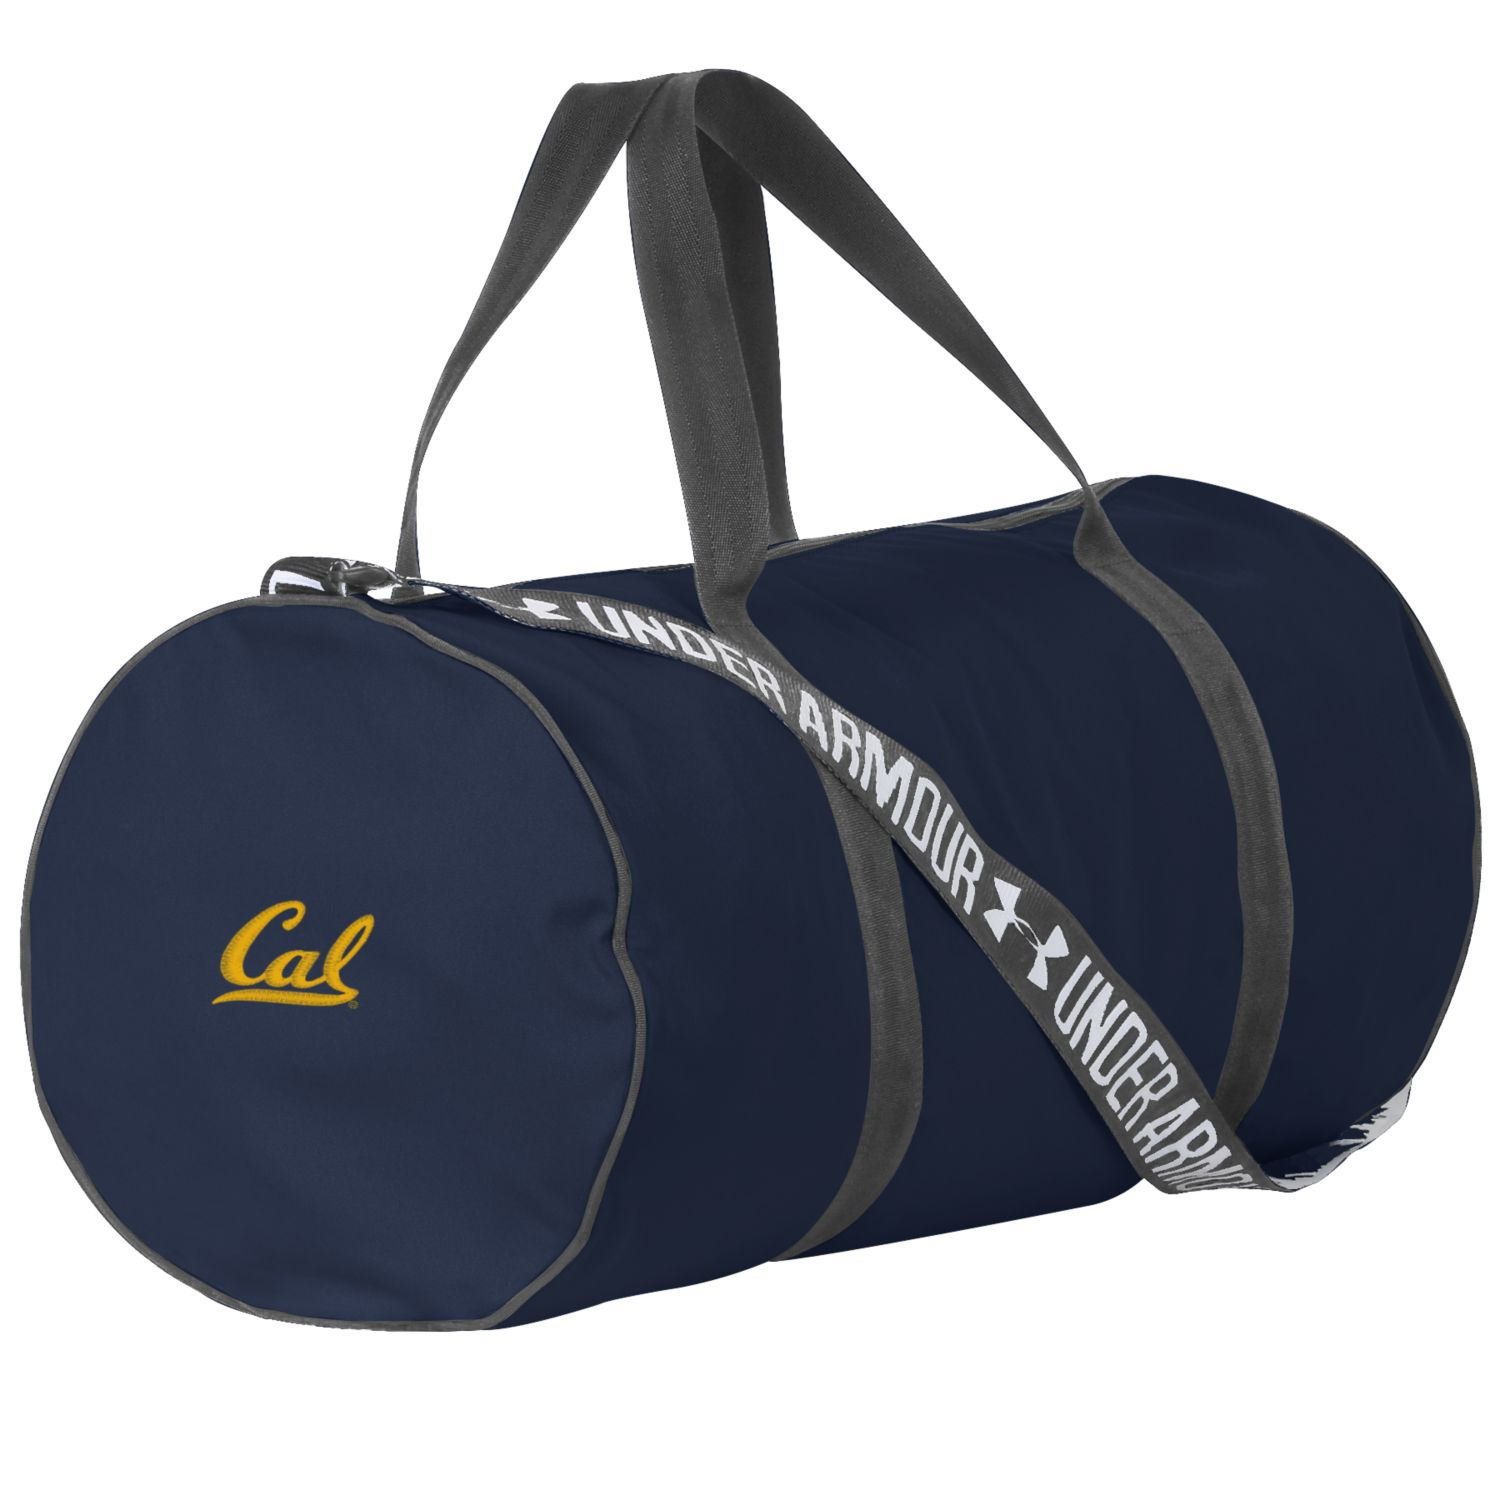 Cal Bears Under Armour Women's Duffel Bag